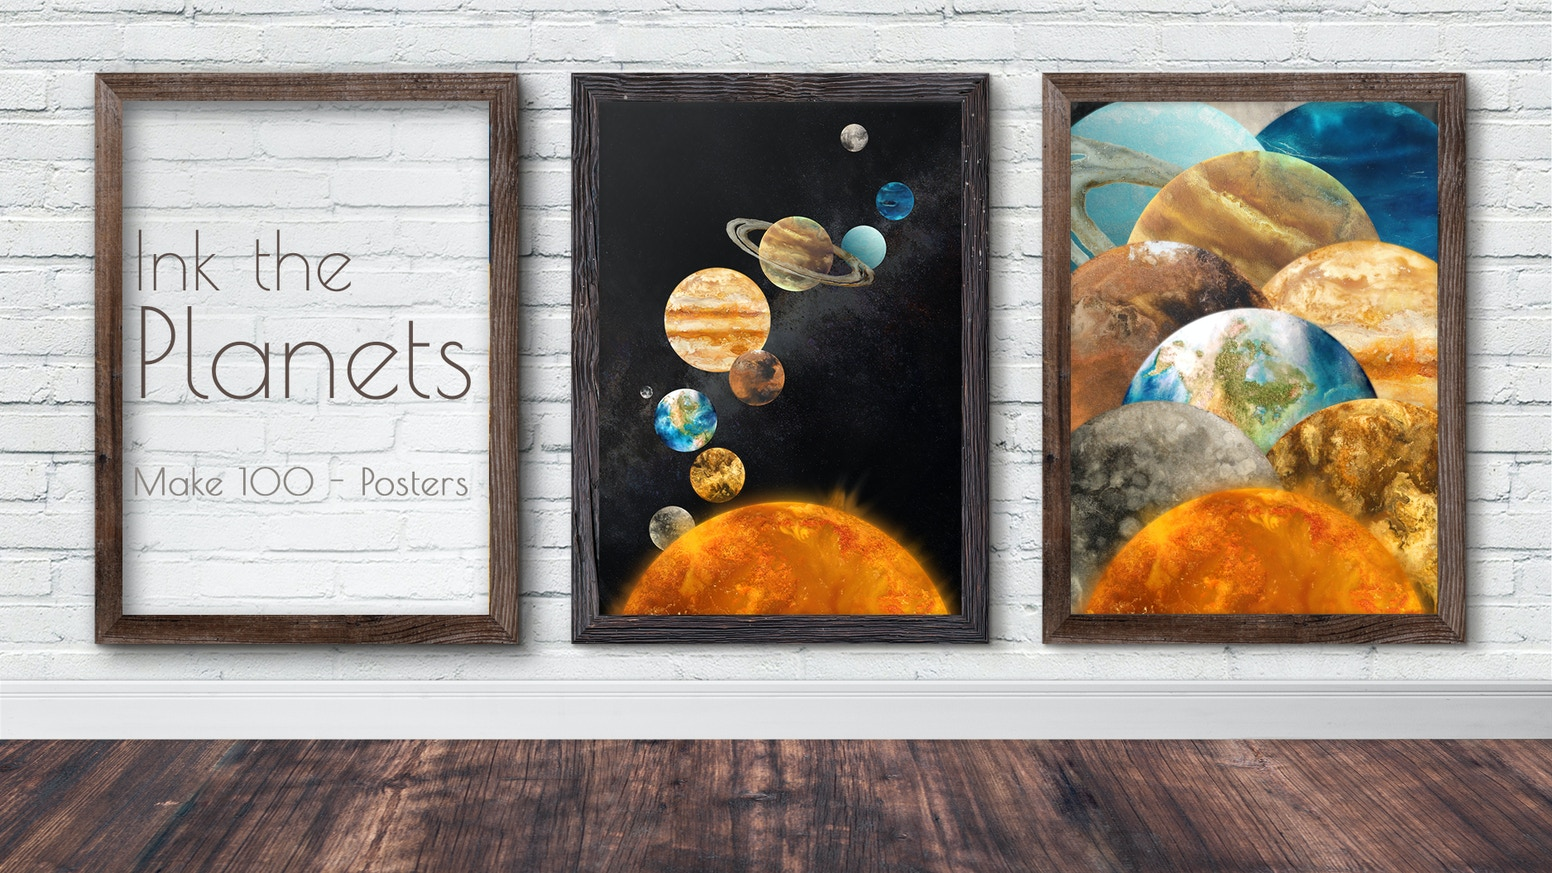 Explore our planets through art in these beautiful, limited edition posters.